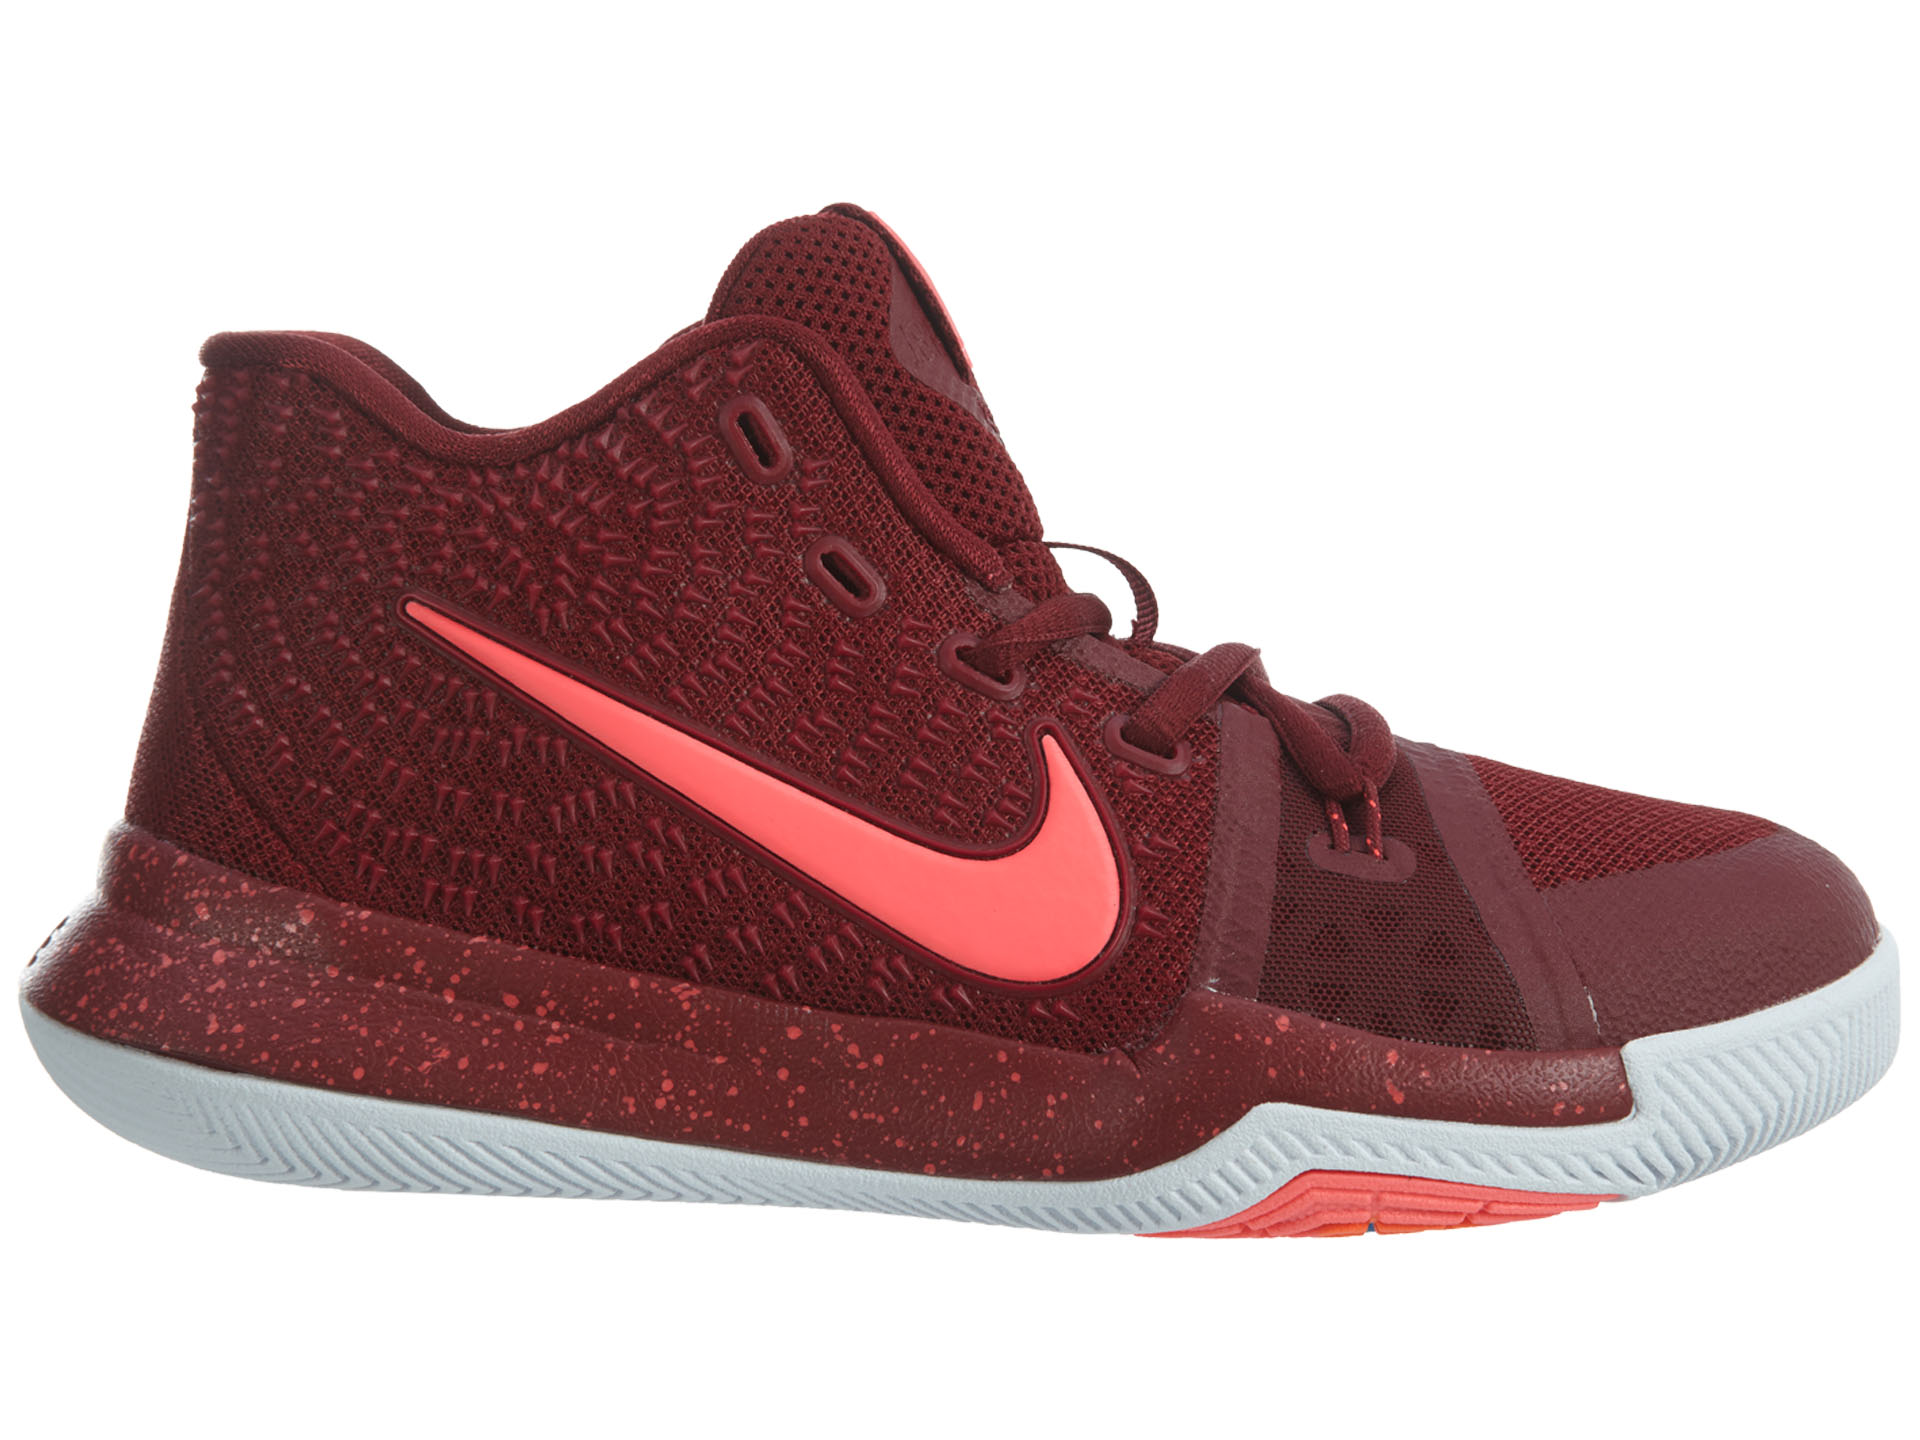 9d82fe89381a Nike - Kids Nike Kyrie 3 PS Hot Punch Team Red Total Crimson White Pink  Blast - Walmart.com